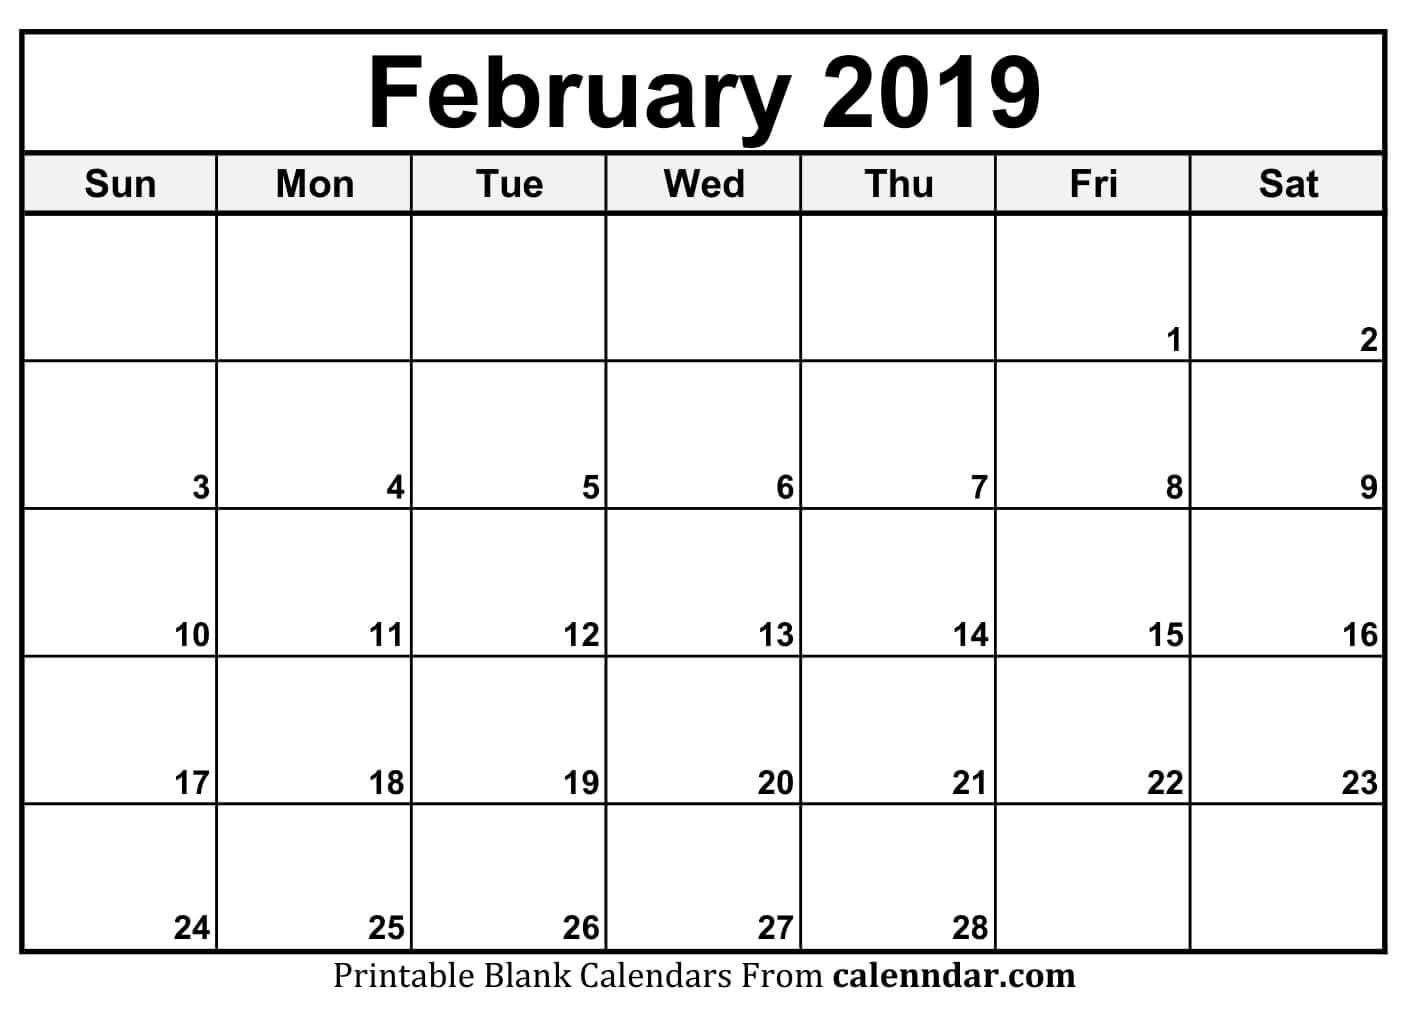 2019 February Calendar Template - Free Printable Calendar Templates with February Calendar Printable Template Blank